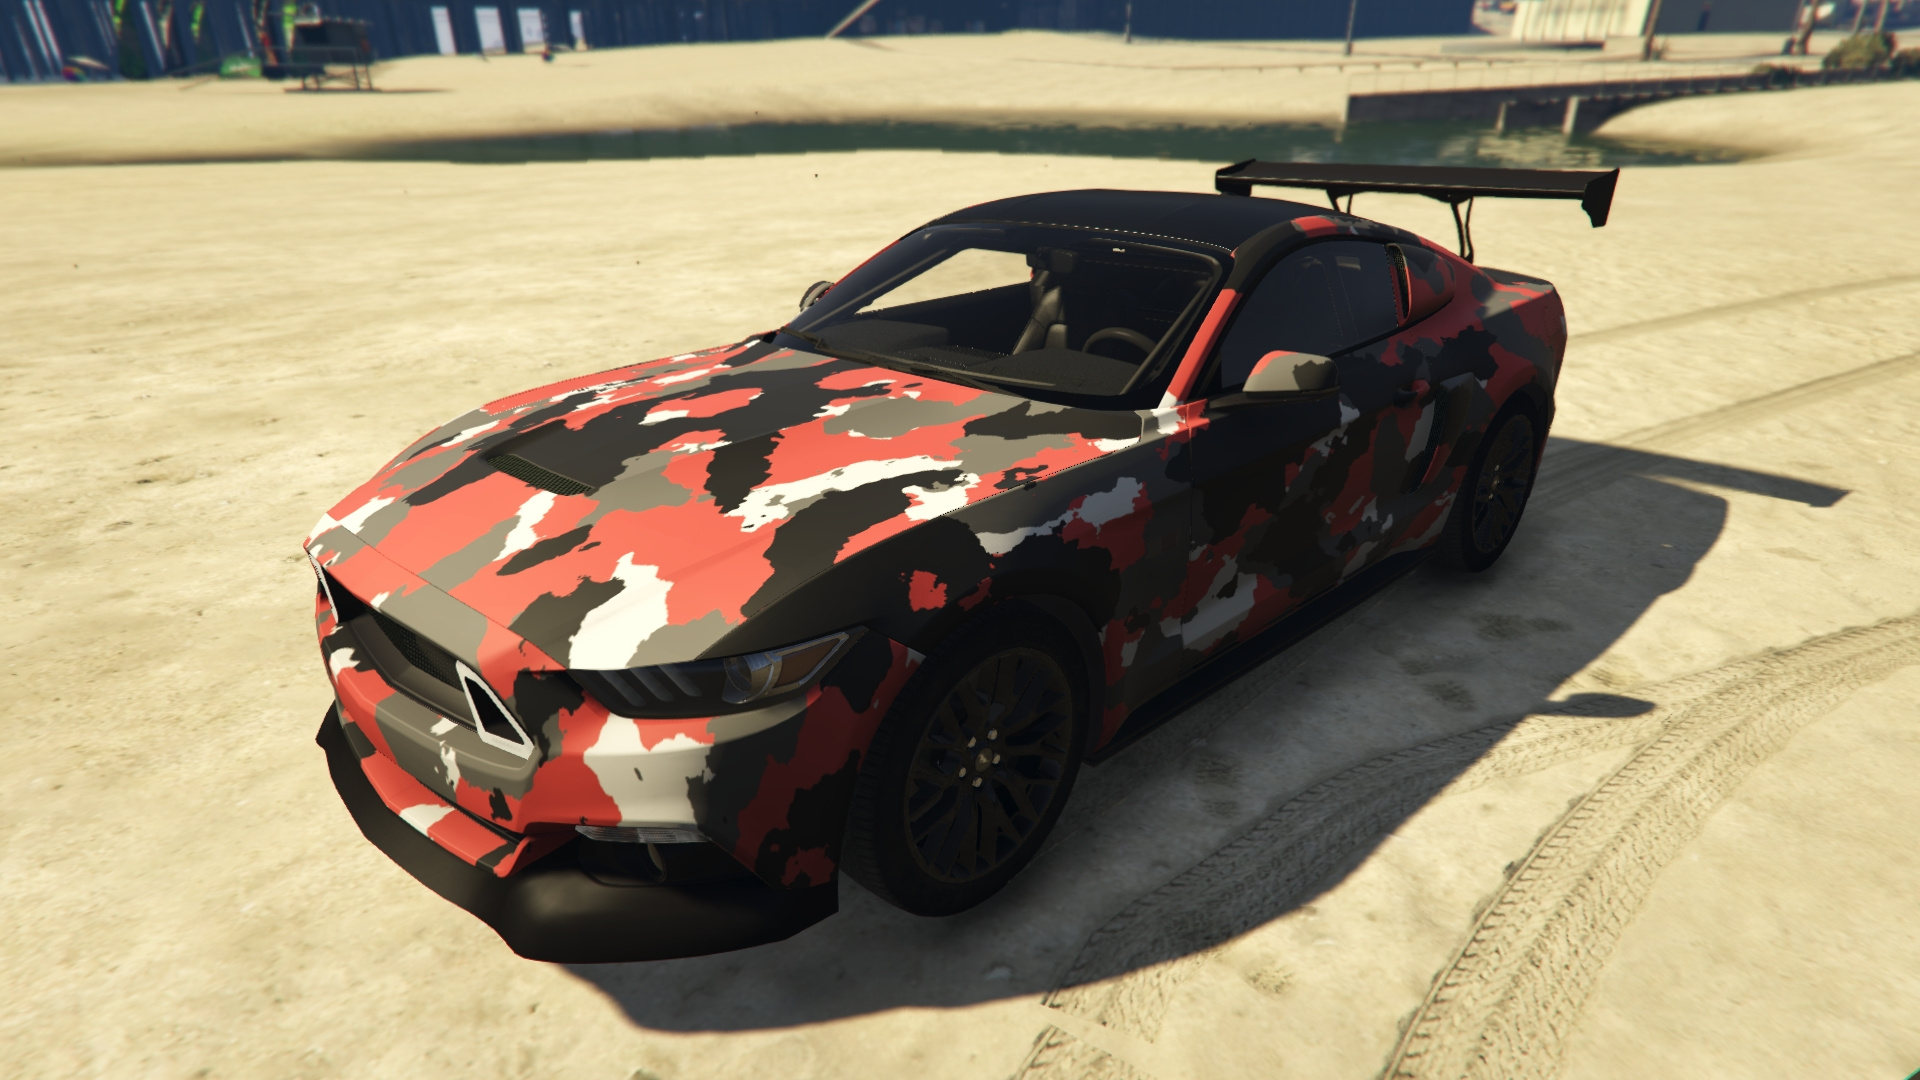 Ford Mustang Gt Camouflage Paintjob Gta5 Mods Com